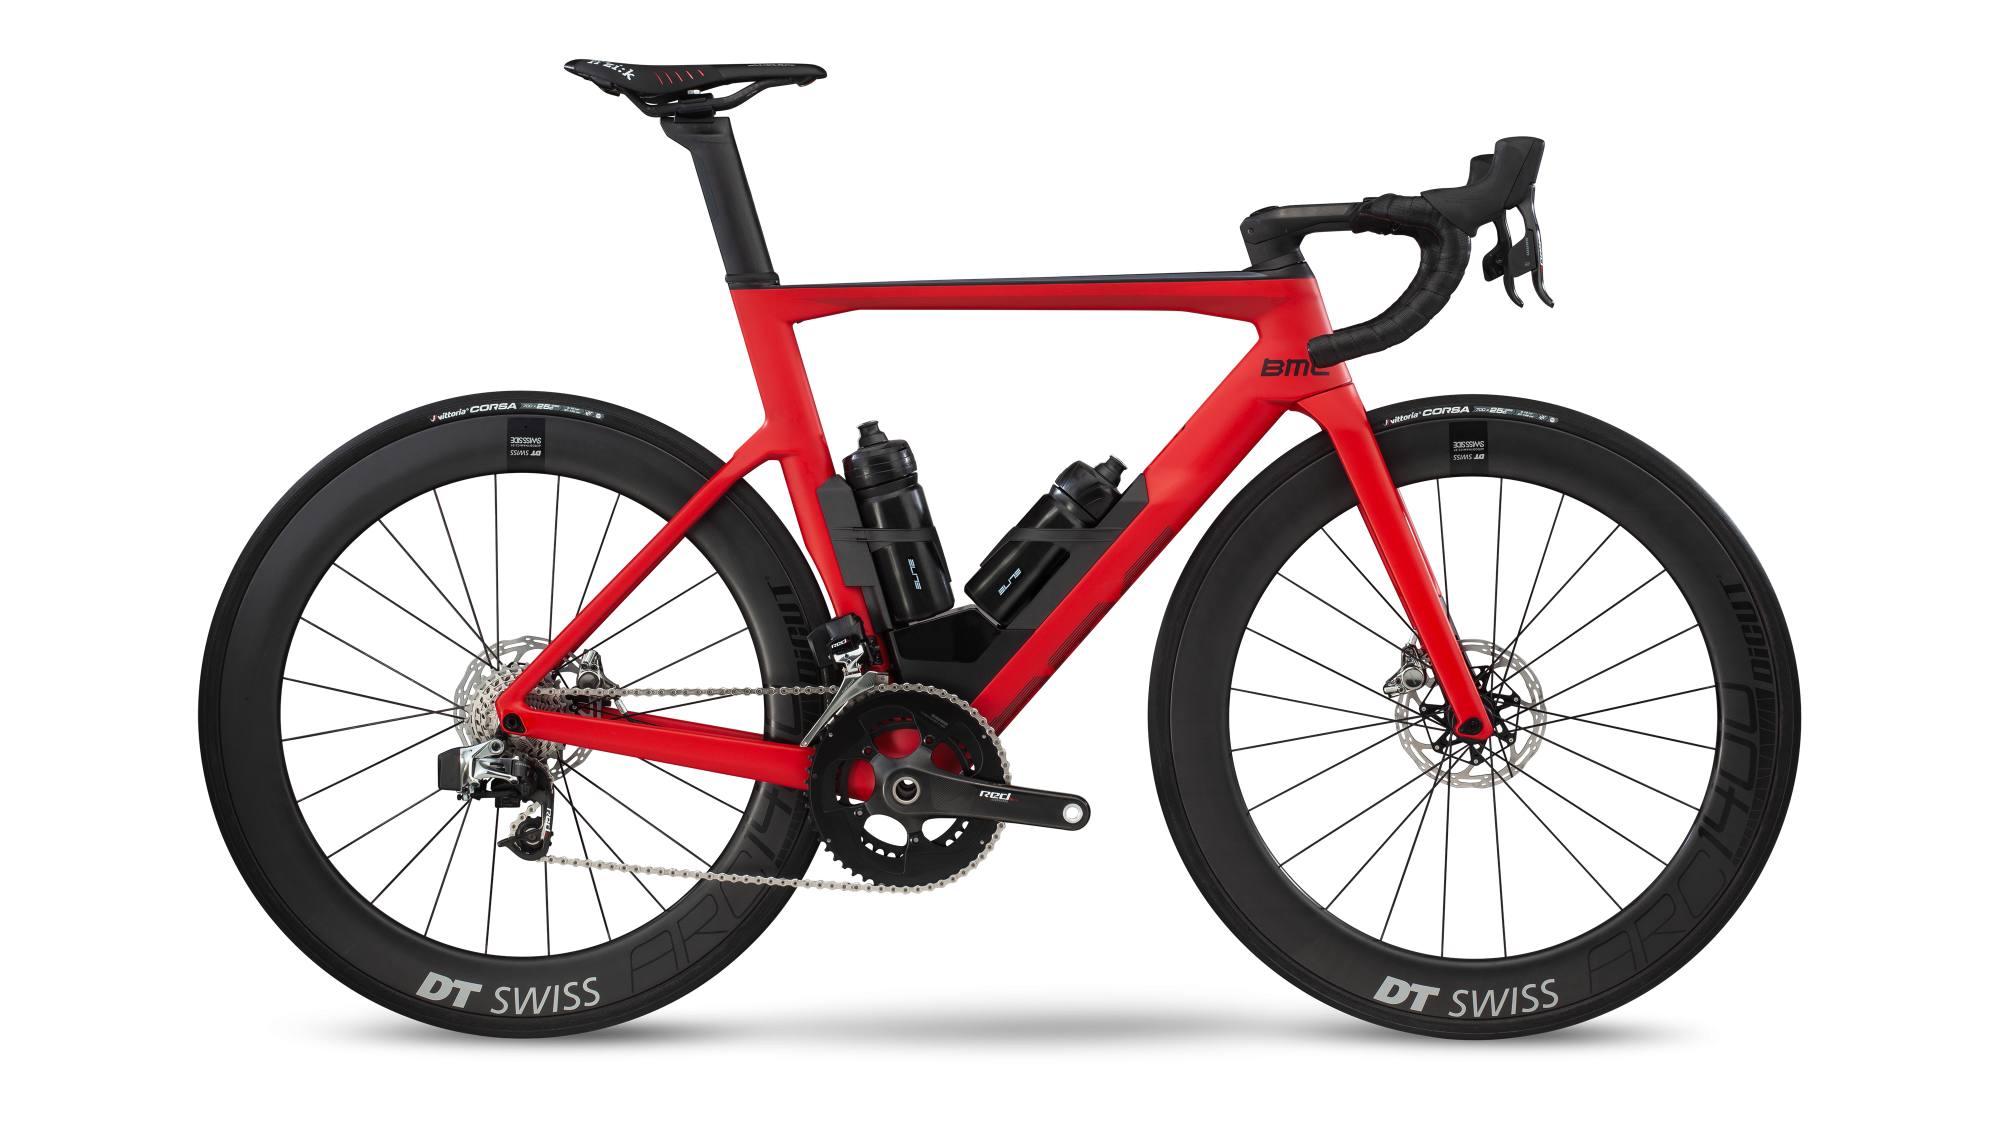 BMC Timemachine 01 FOUR ultegra Di2